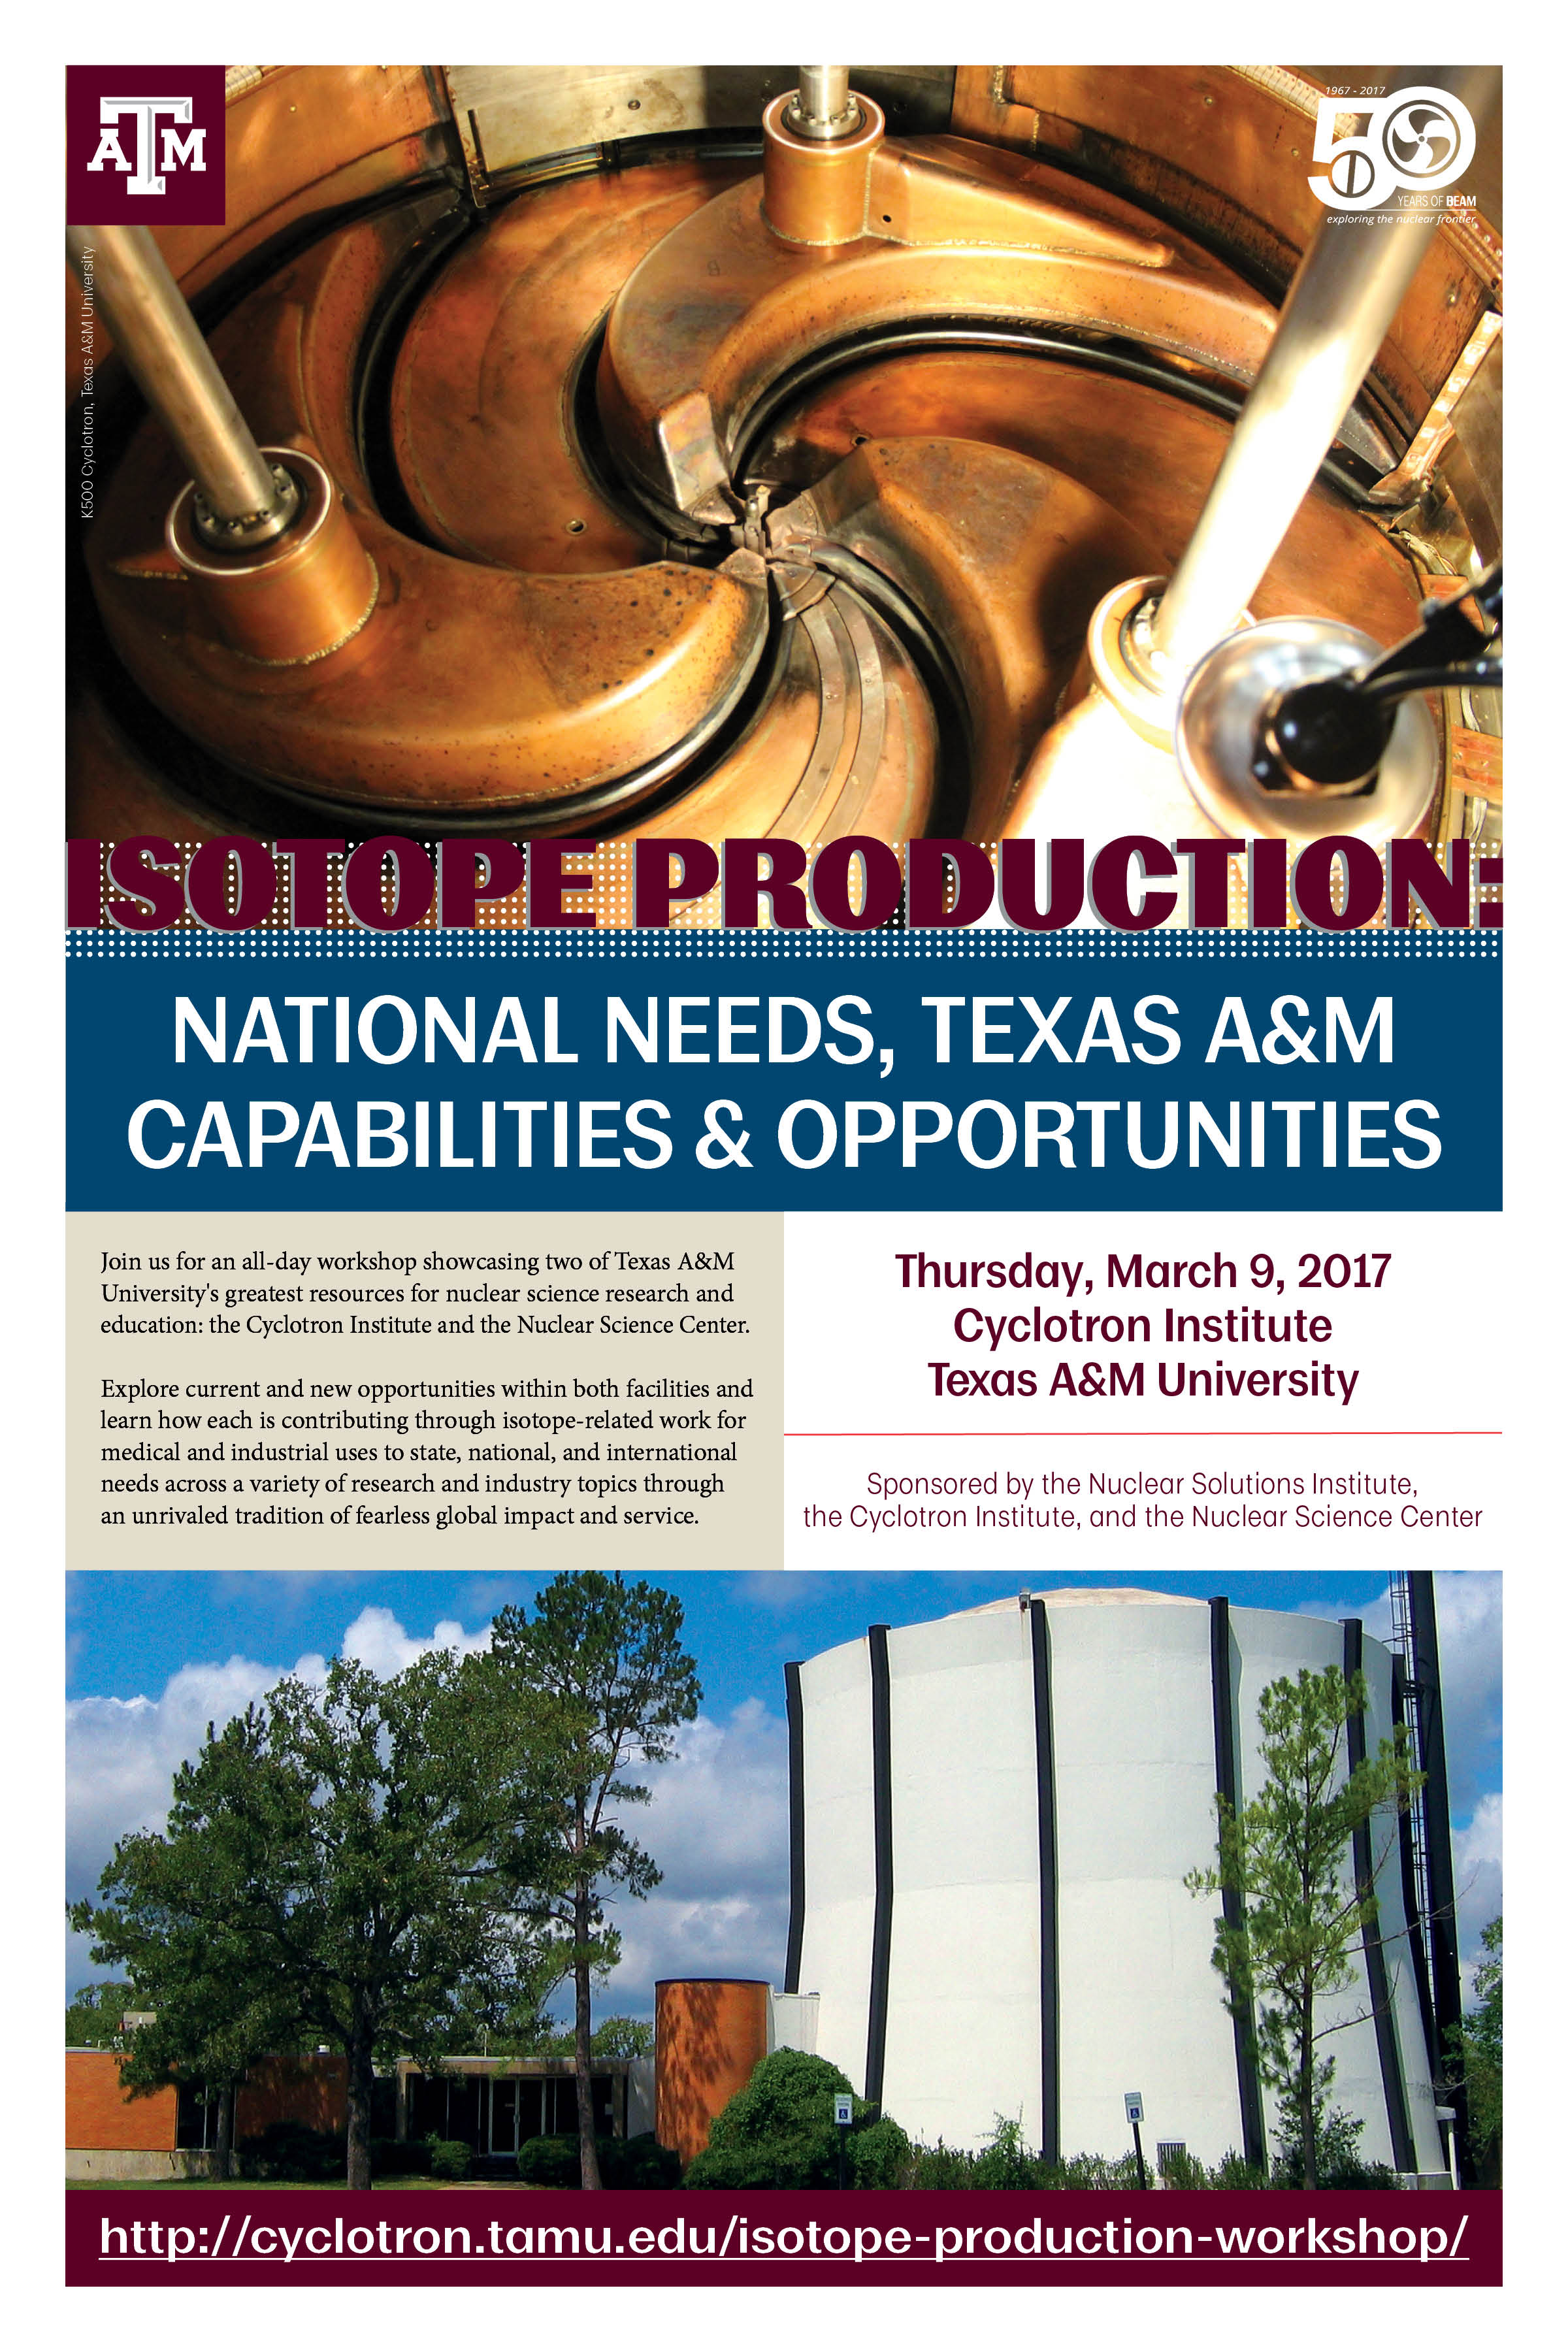 Poster featuring Cyclotron images to promote the Isotope Production Workshop event